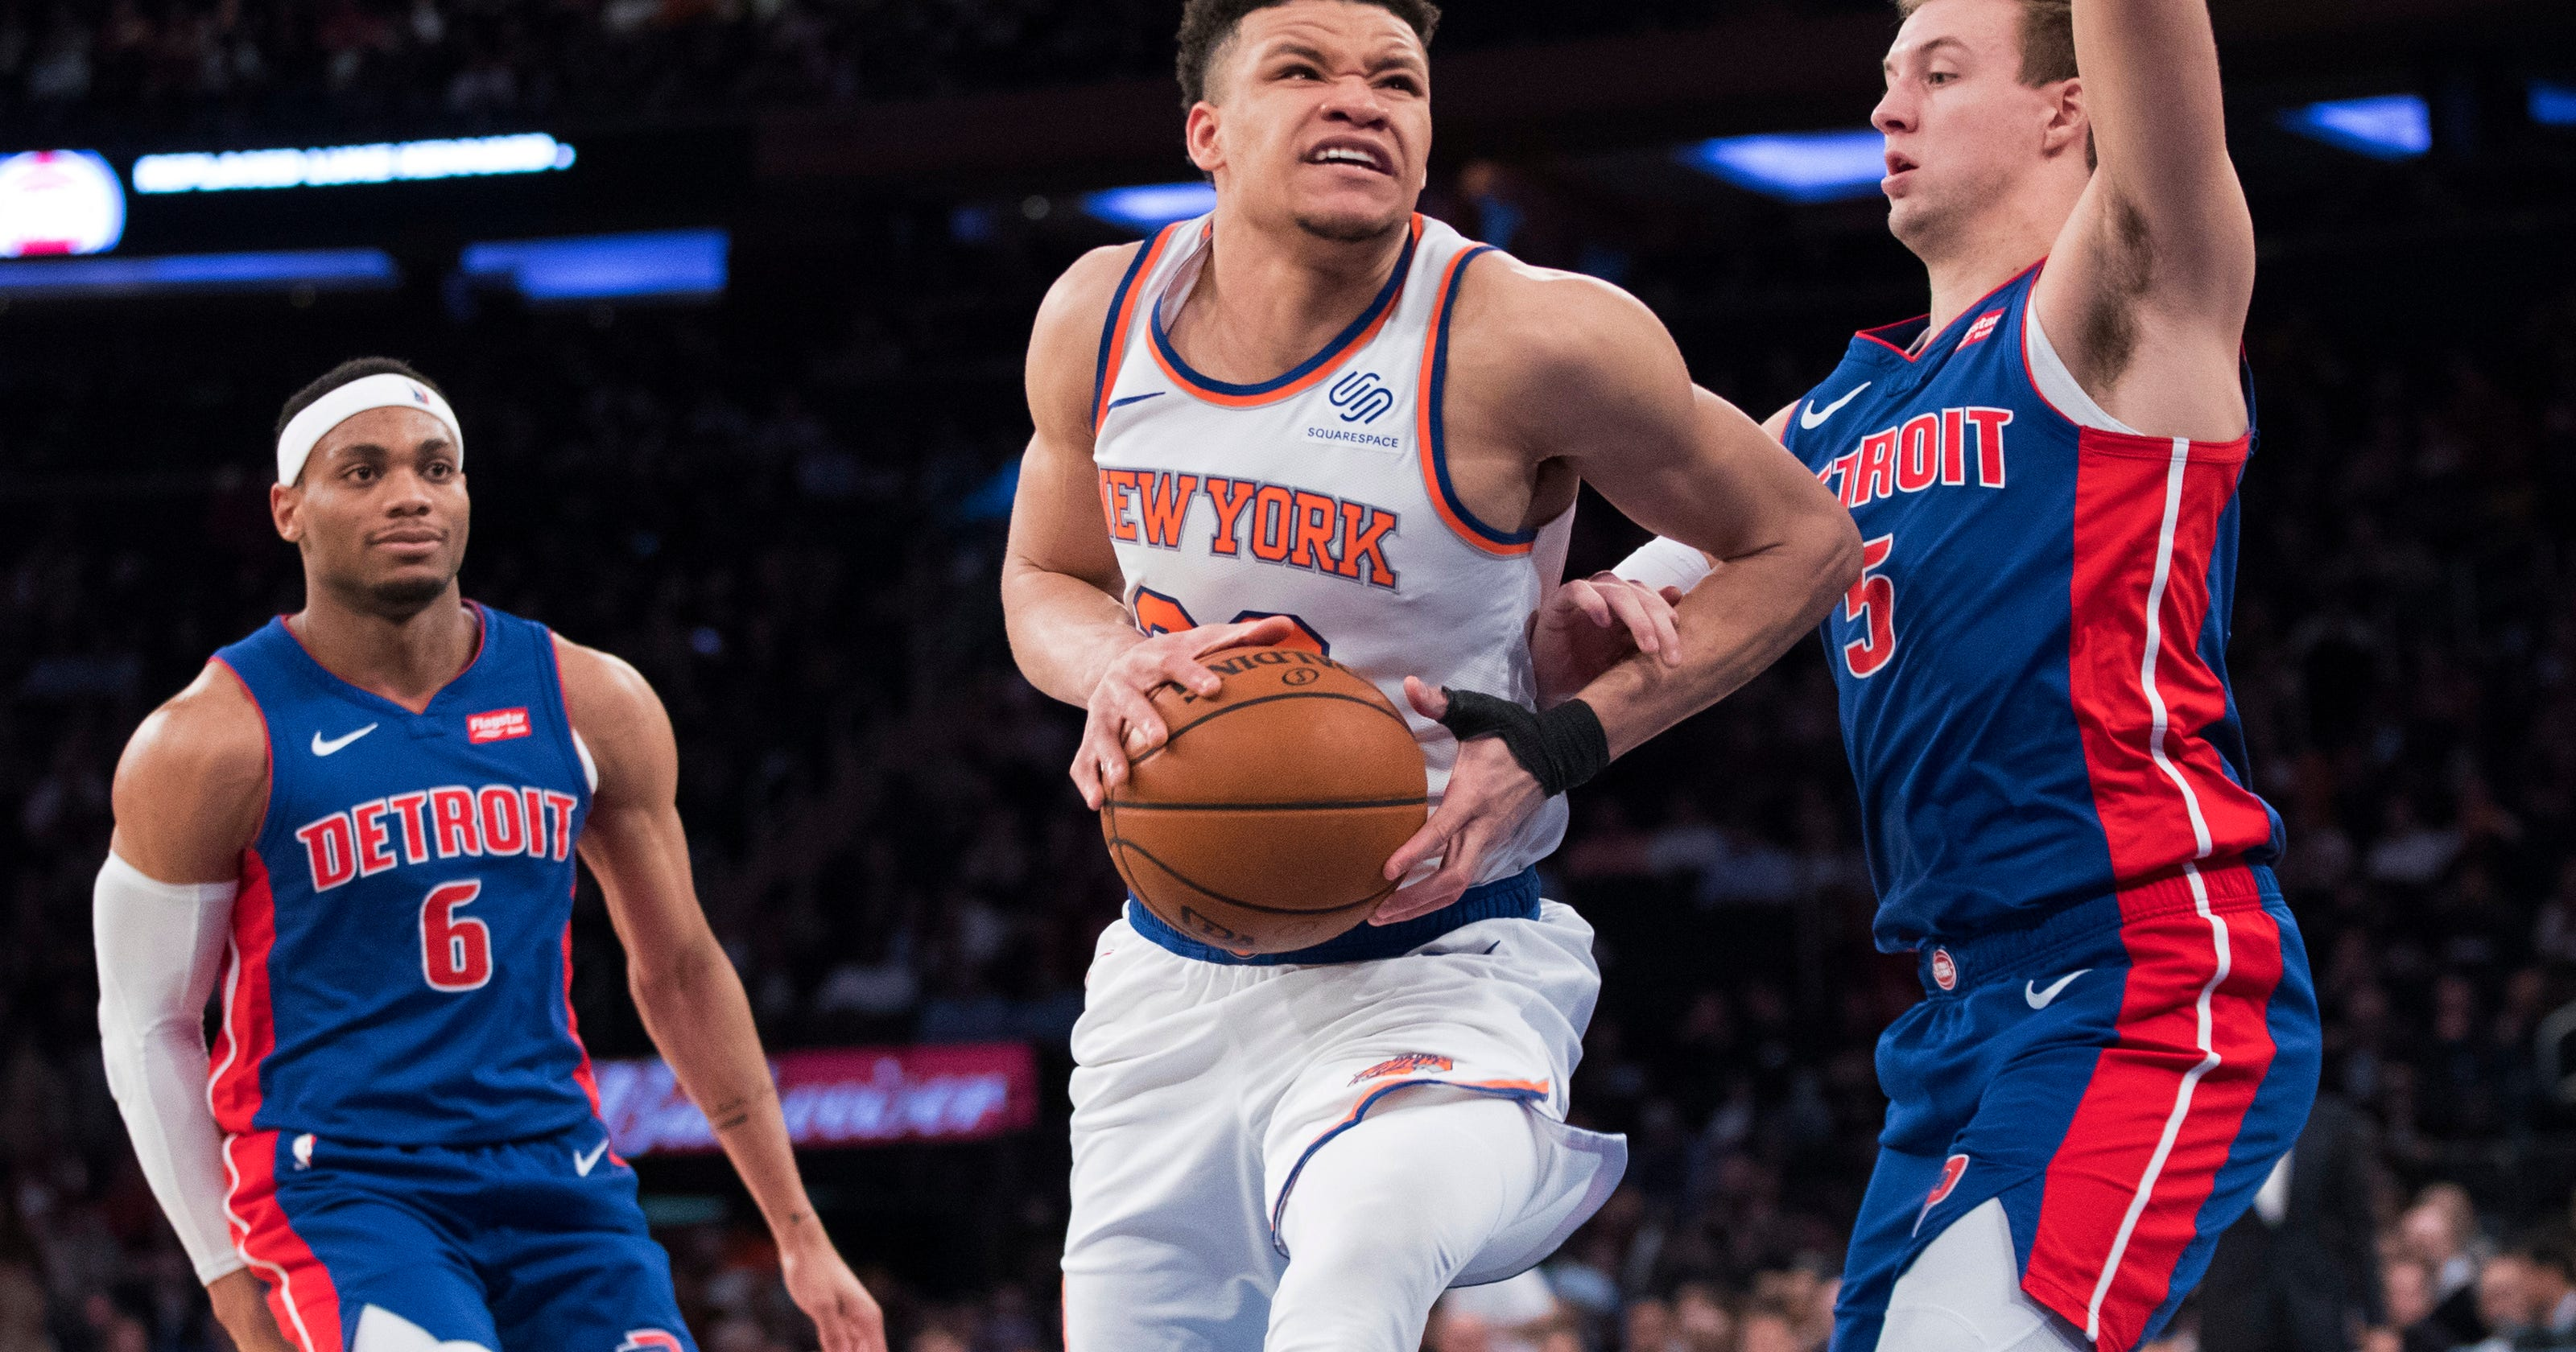 sneakers for cheap 45ab8 04332 New York Knicks: Kevin Knox working toward big sophomore season